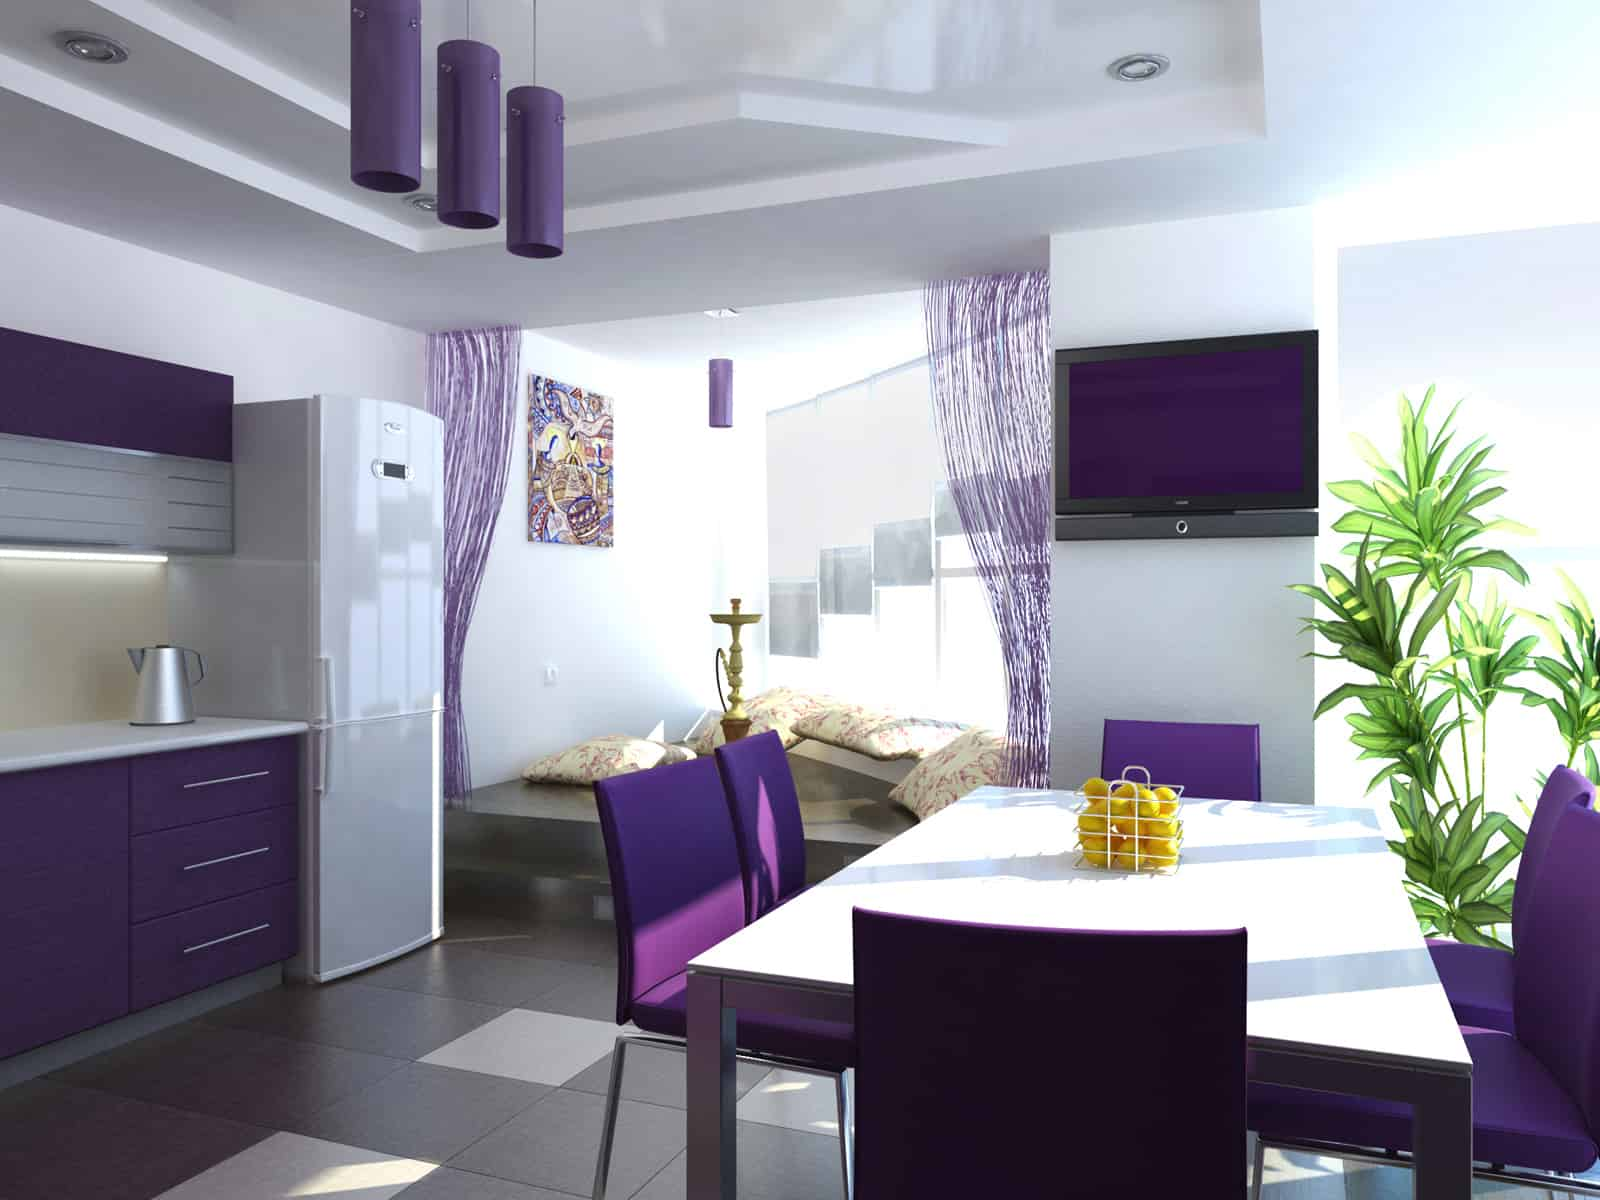 Interior design trends 2017 purple kitchen Interior design ideas for selling houses